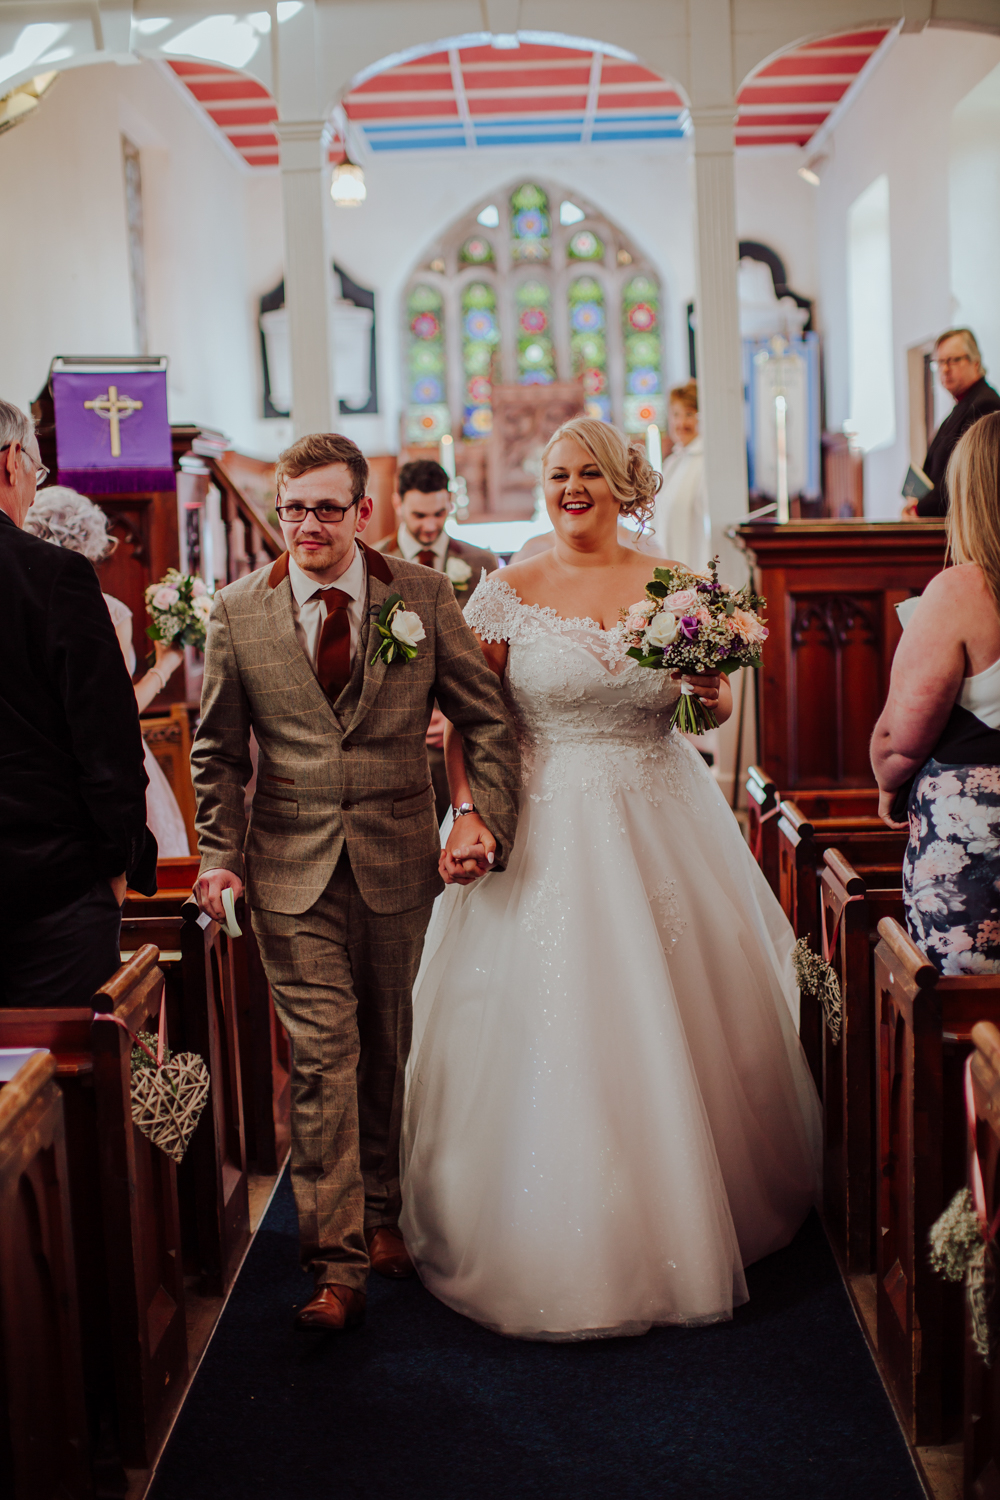 Yorkshire quirky wedding photographers sheffield-36.jpg